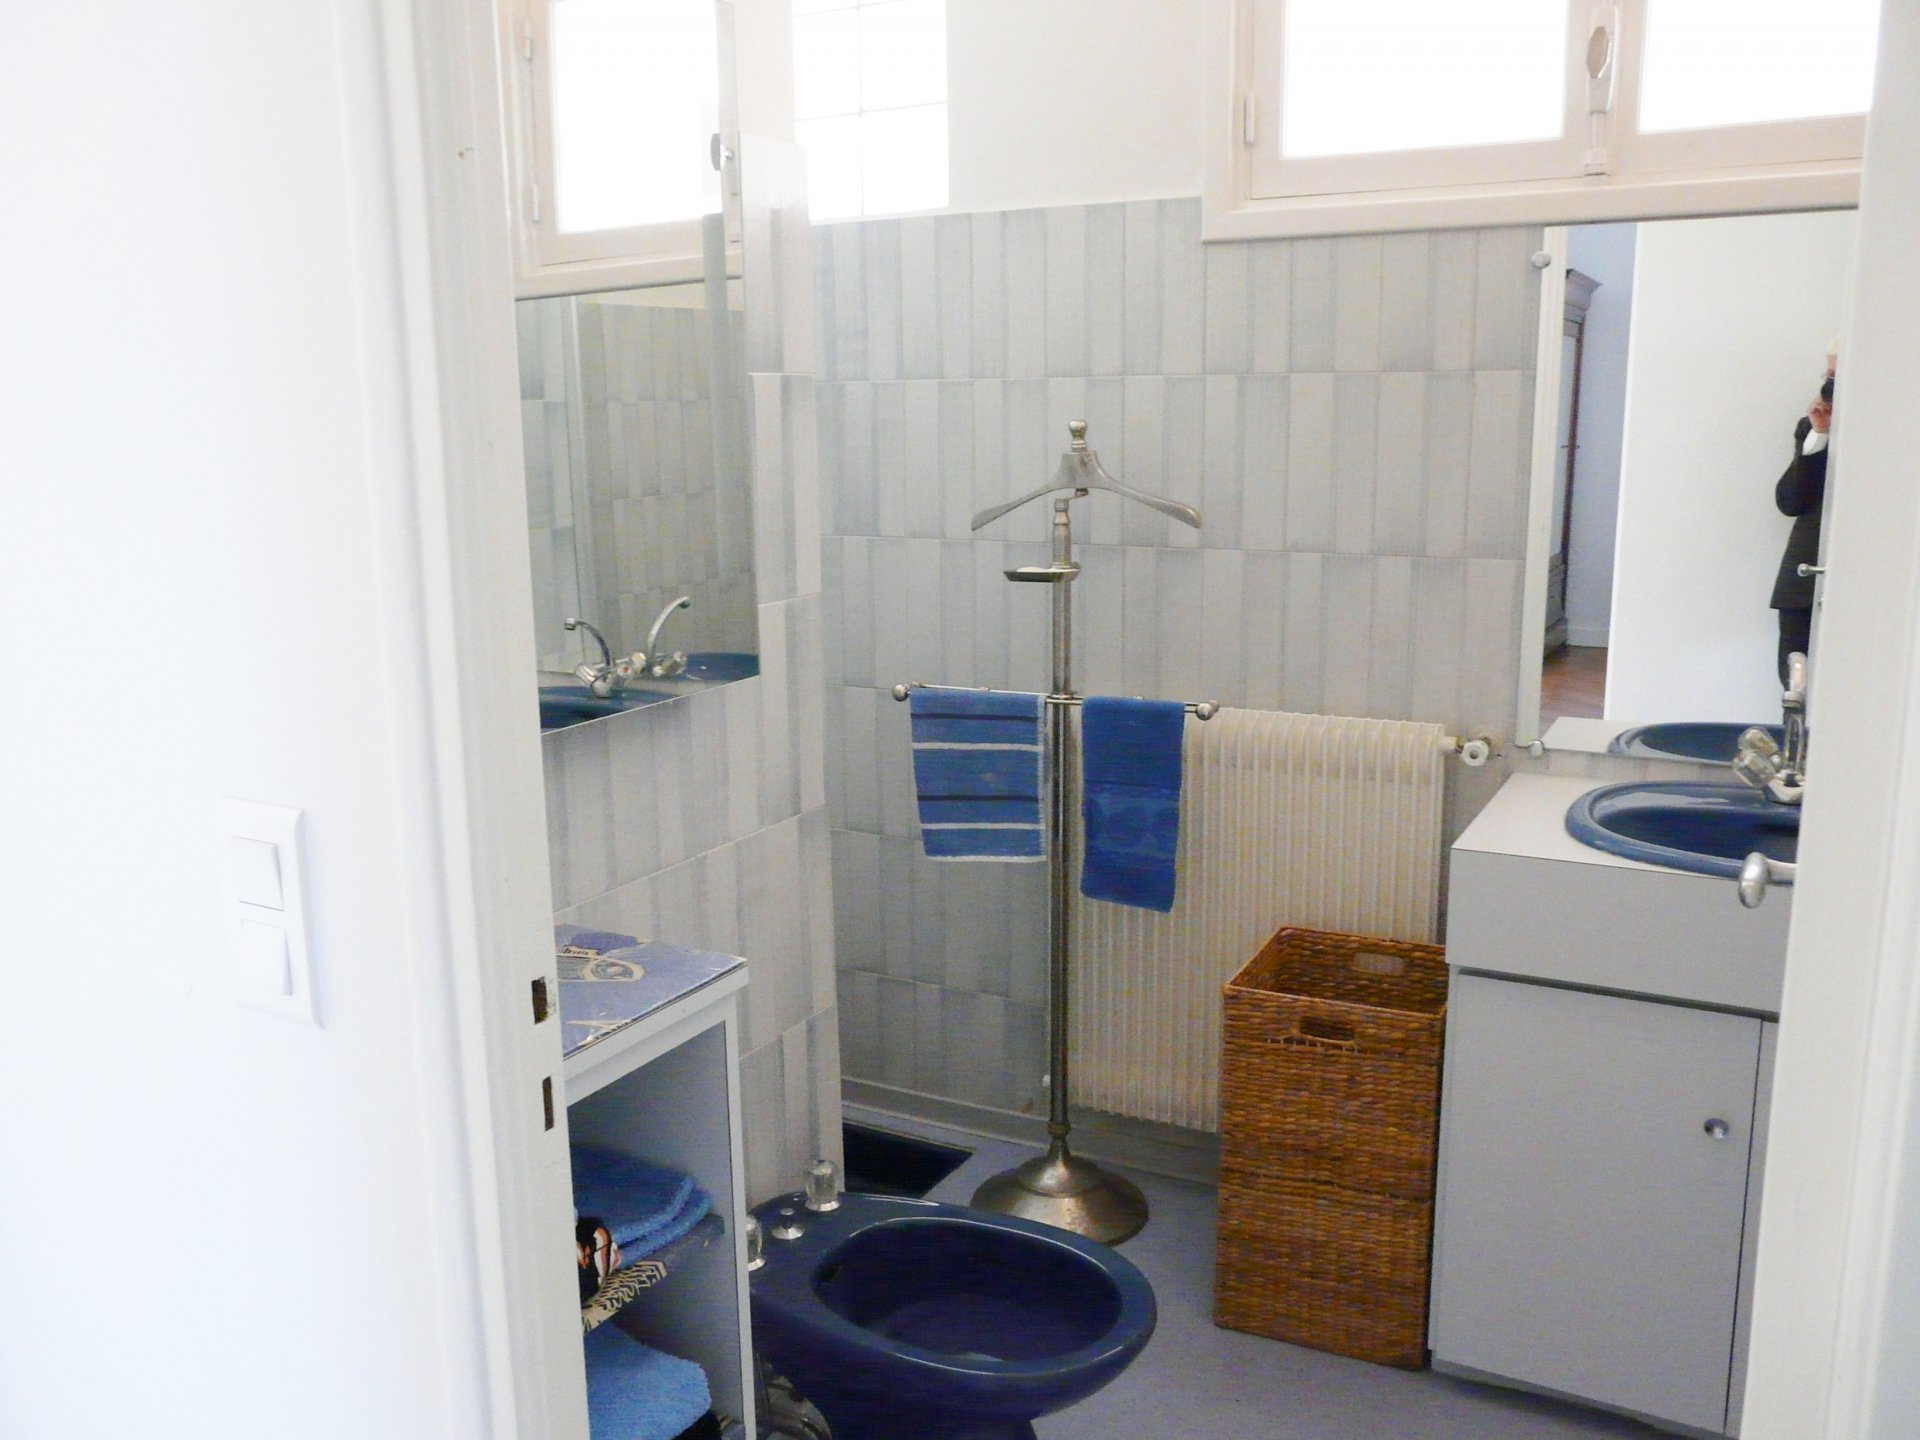 Bathroom at the first floor